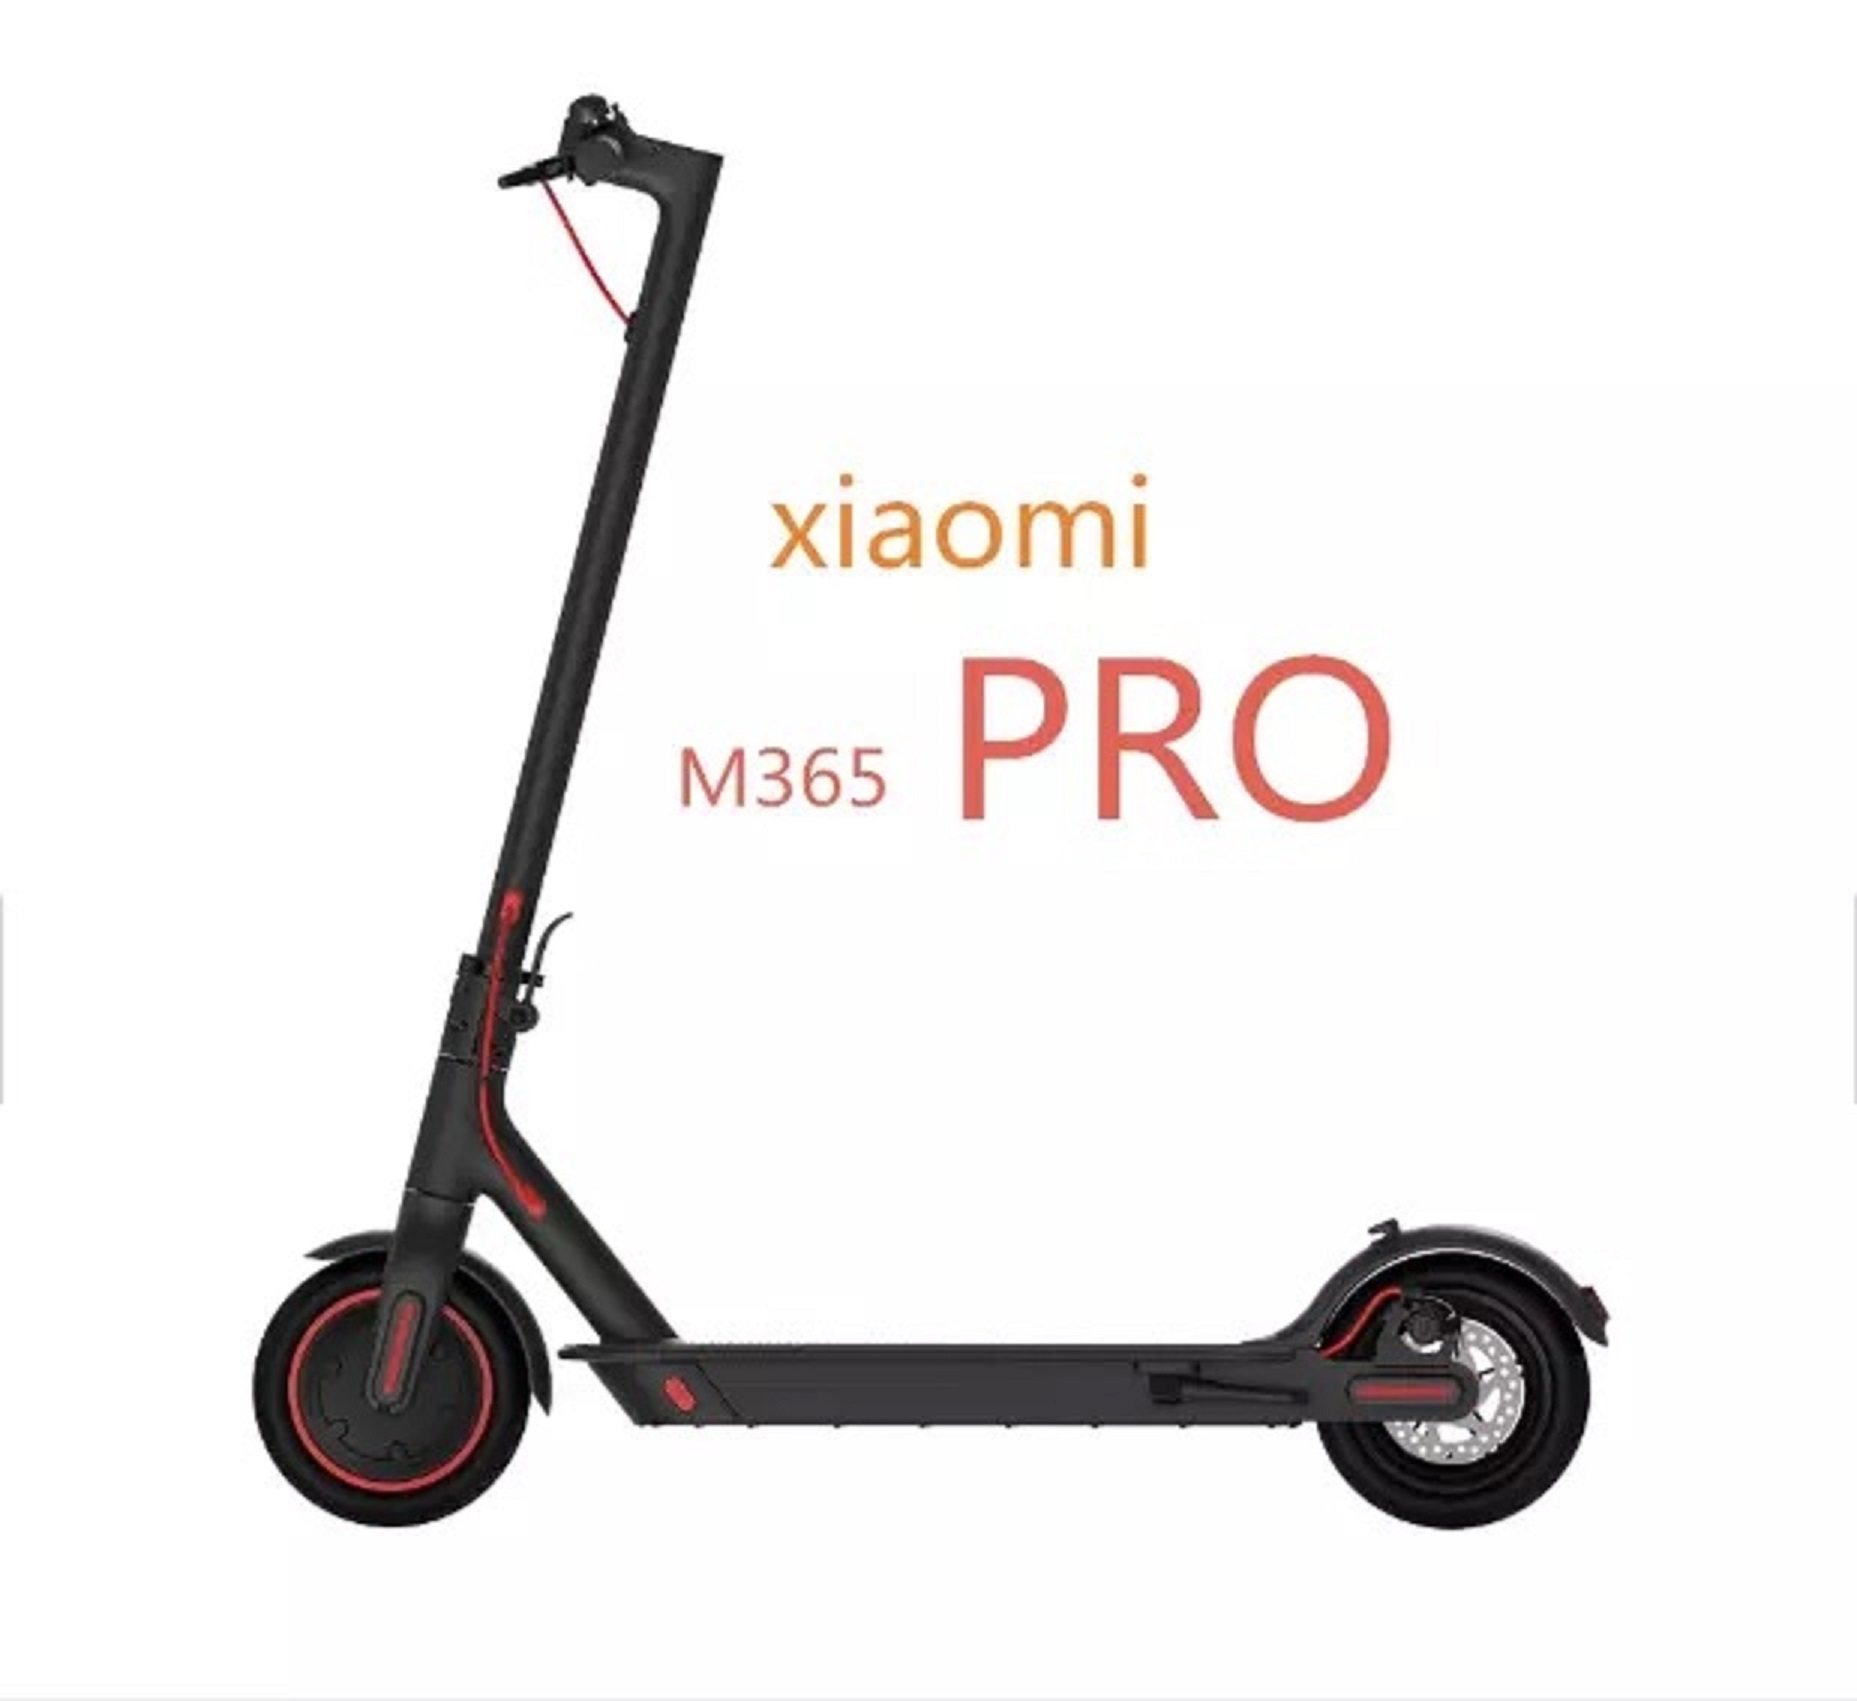 Xiaomi M365 Pro electric scooter